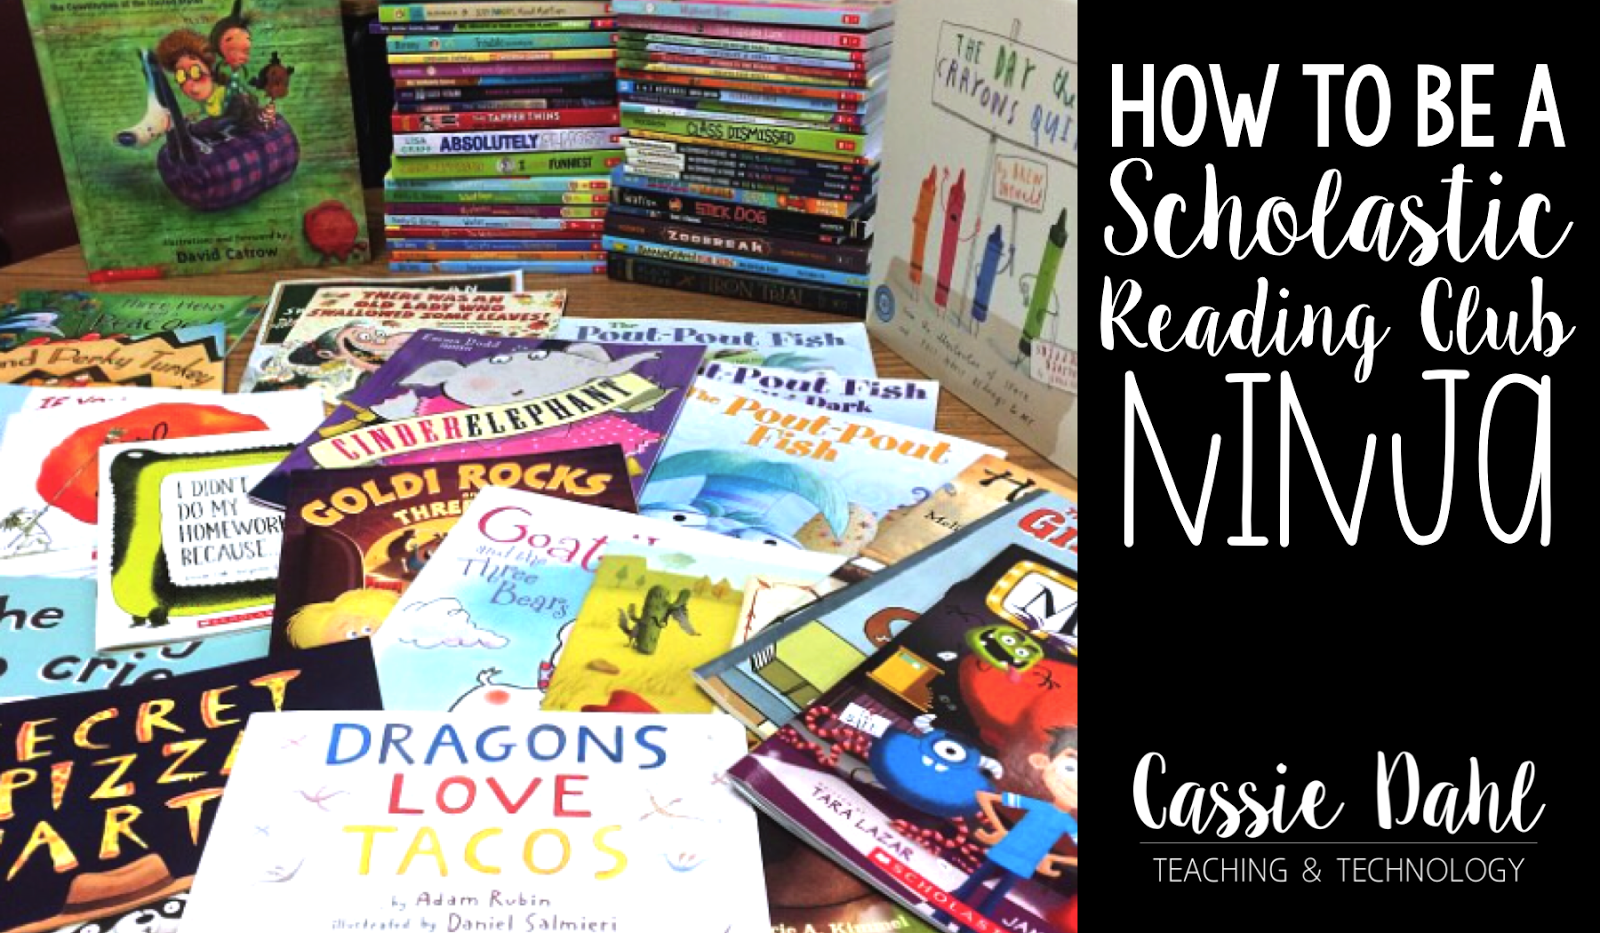 Do you use Scholastic Reading Club in your classroom? Are you maximizing your orders and getting free books for your students? This blog post has tons of ideas on how you can become a Scholastic Ninja and make the most of your monthly book orders.